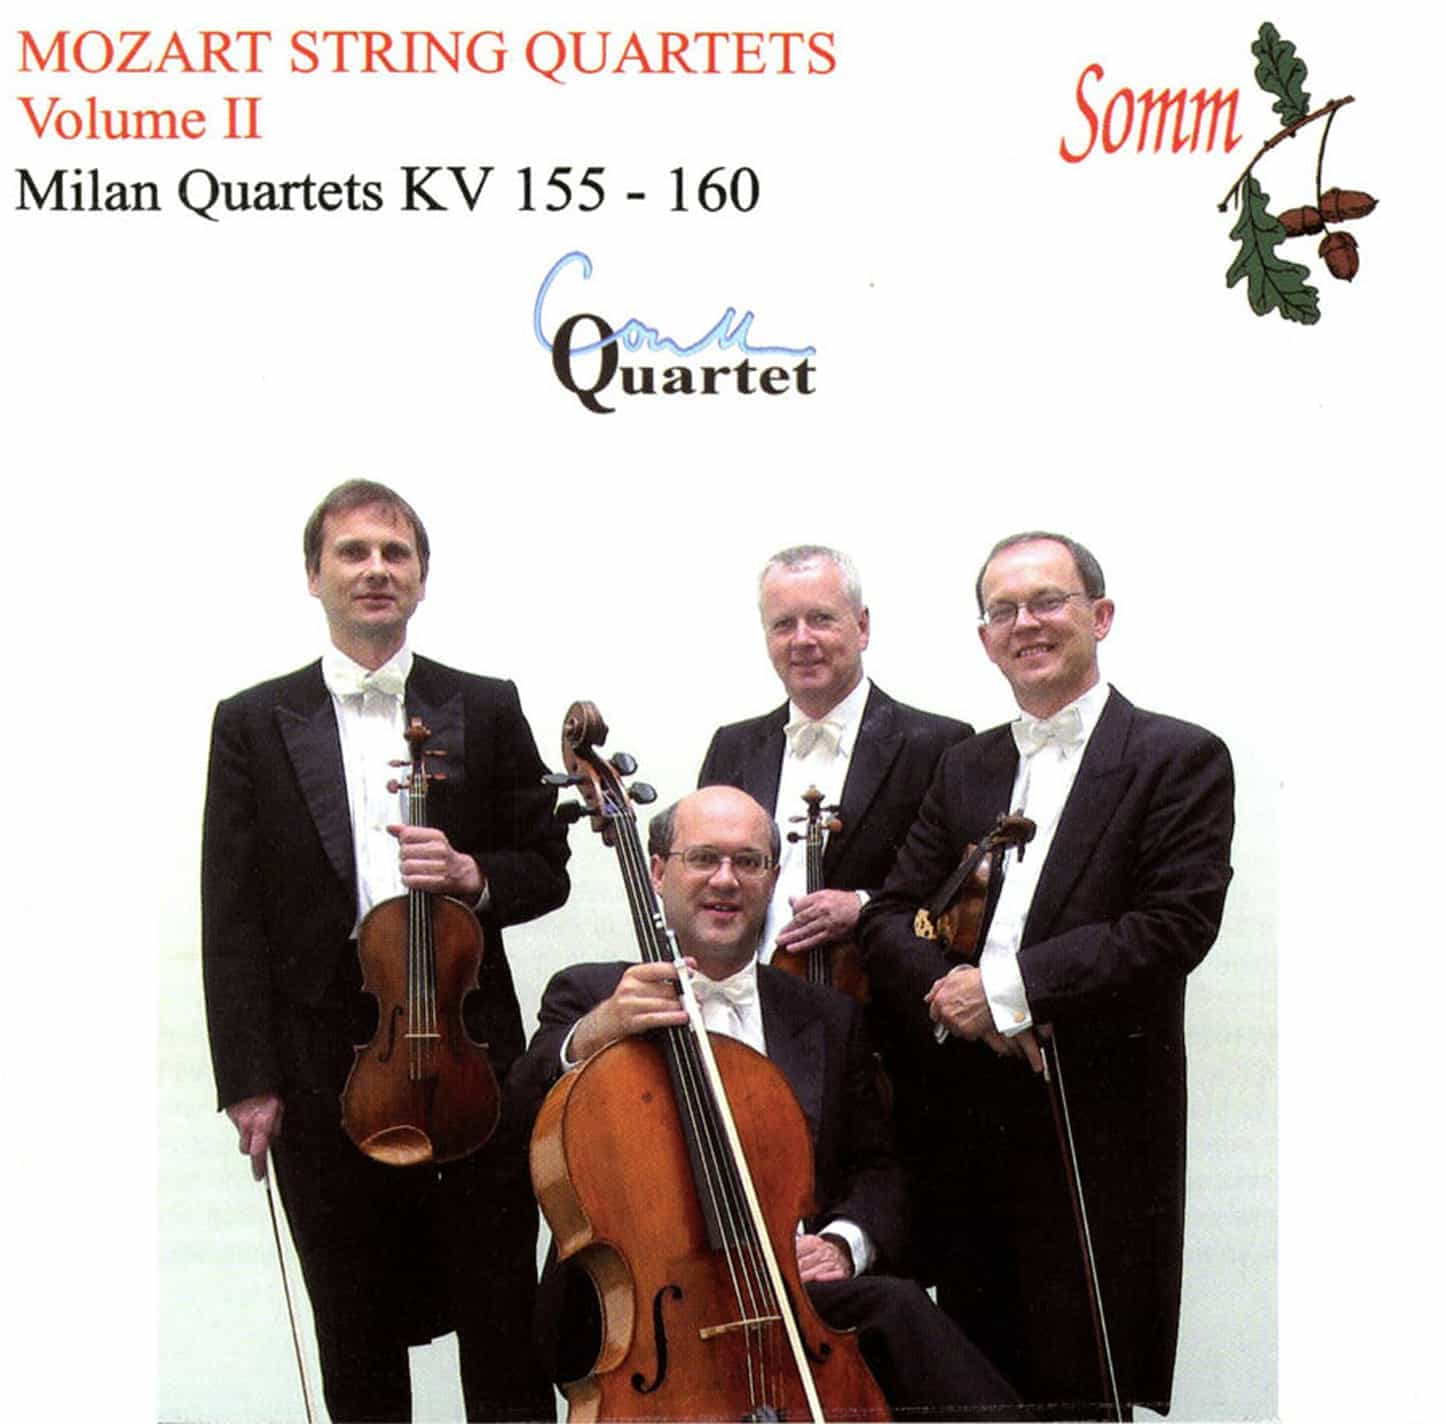 Mozart String Quartets Volume II